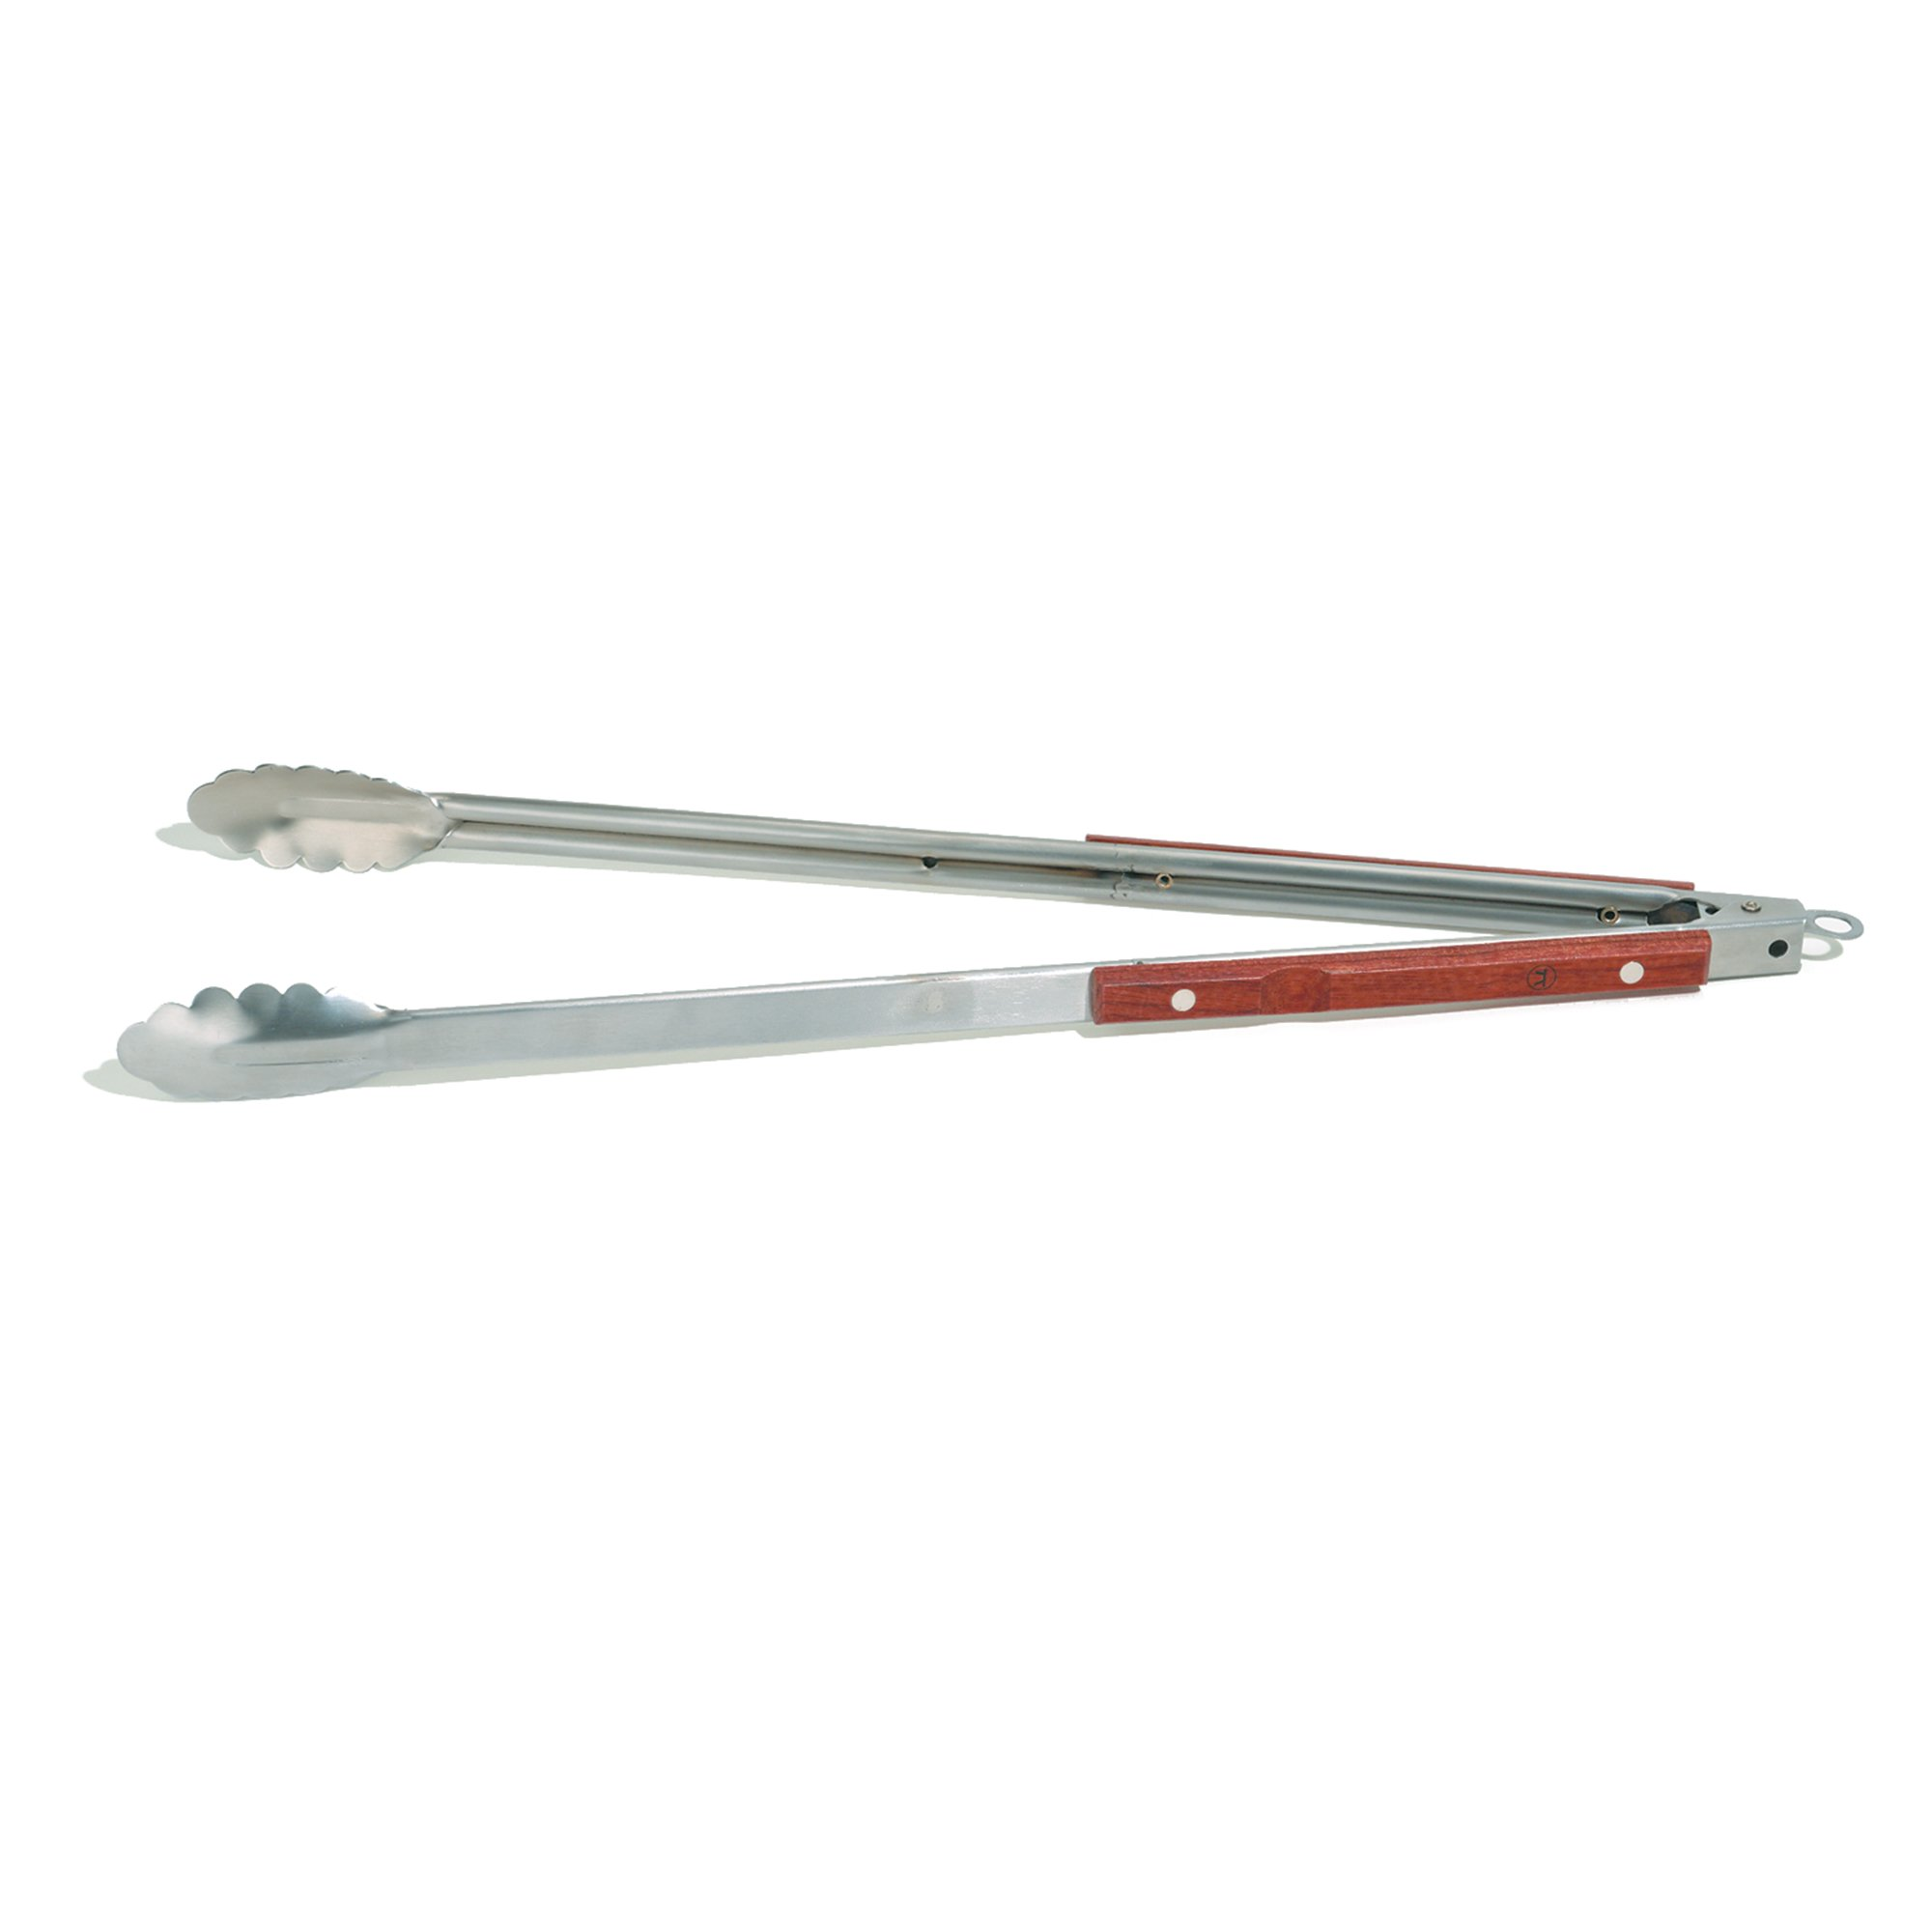 Outset QB22 Rosewood Collection Extra-Long Locking Tongs, 22''